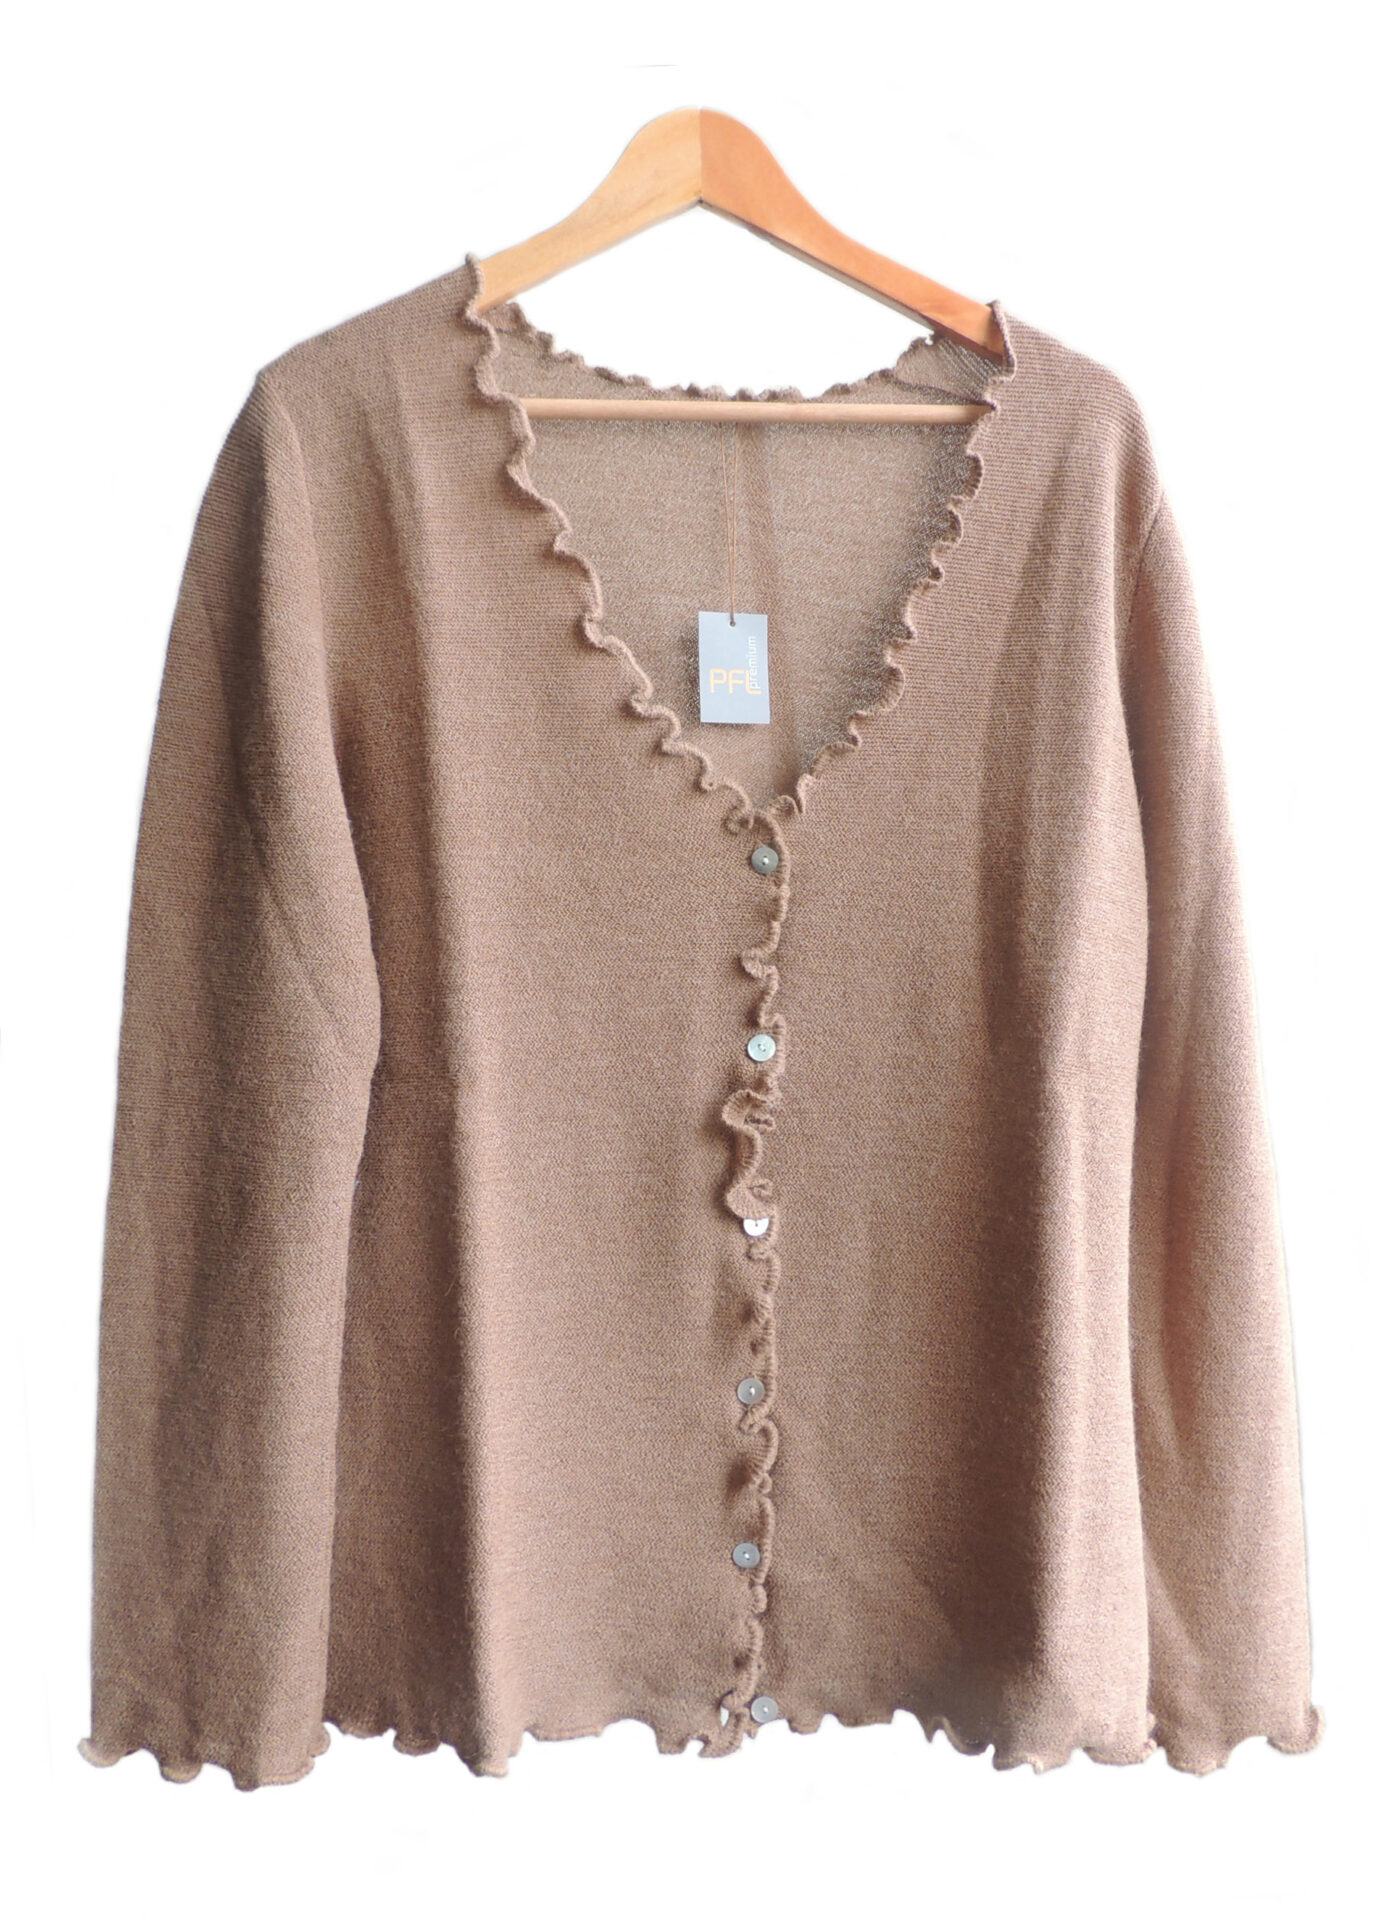 Women's fashion, short cardigan beige, in ultra soft baby alpaca, equipped with V-neck, button closure and long sleeves.